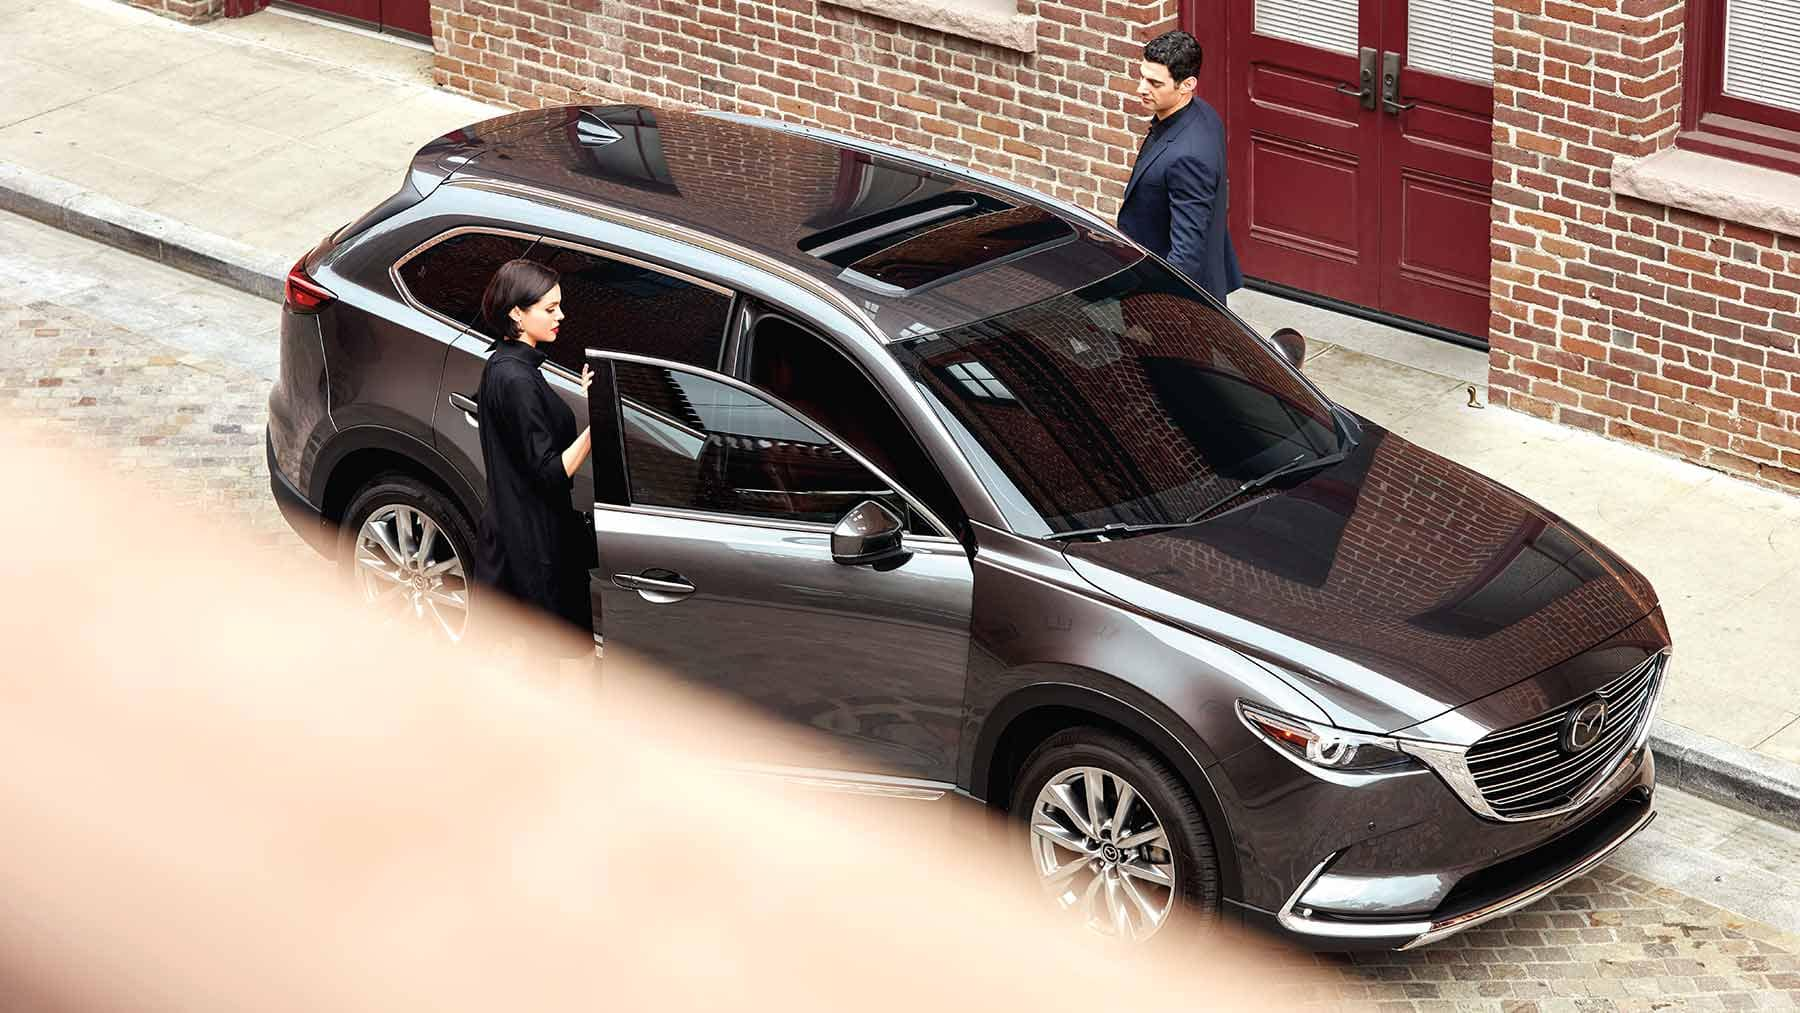 Shining the Spotlight on the 2019 Mazda CX-9